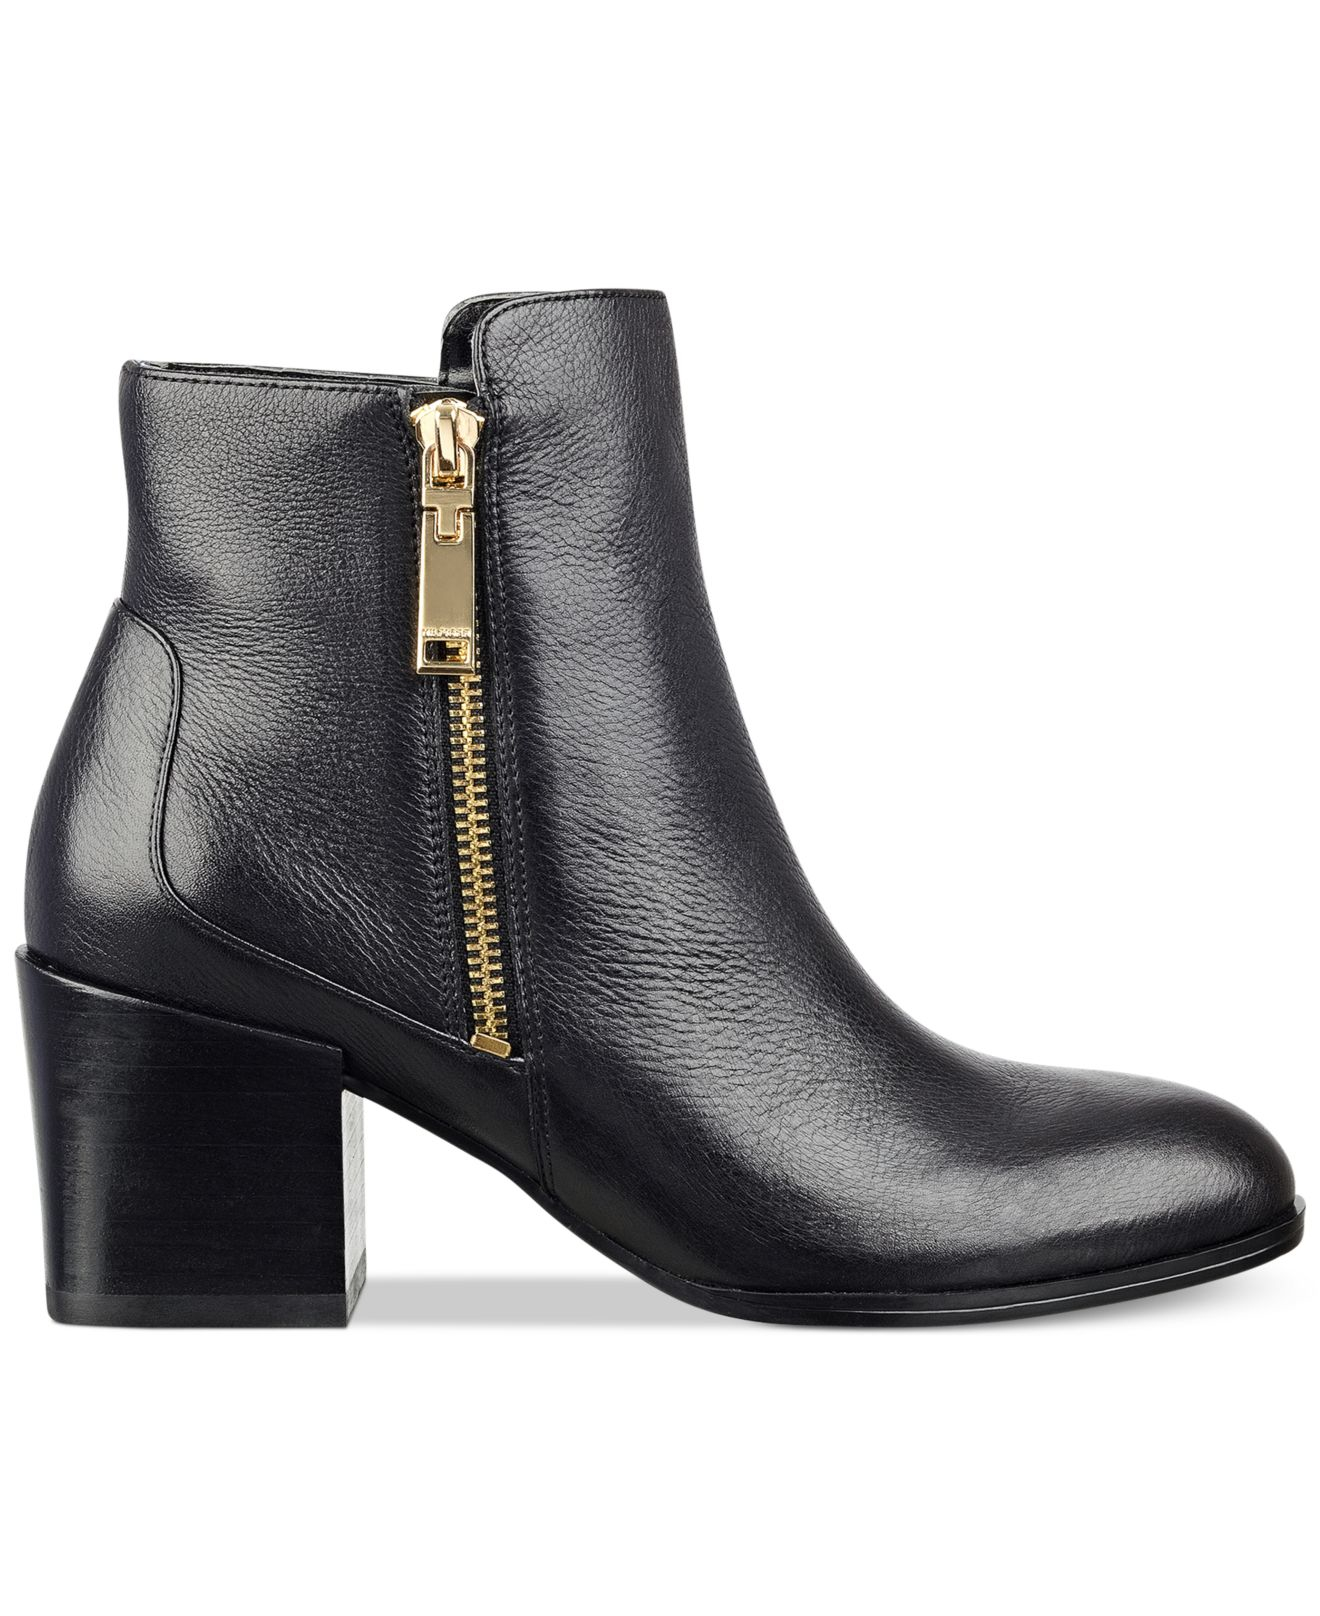 Tommy hilfiger Dita Booties in Black (Black Leather)   Lyst